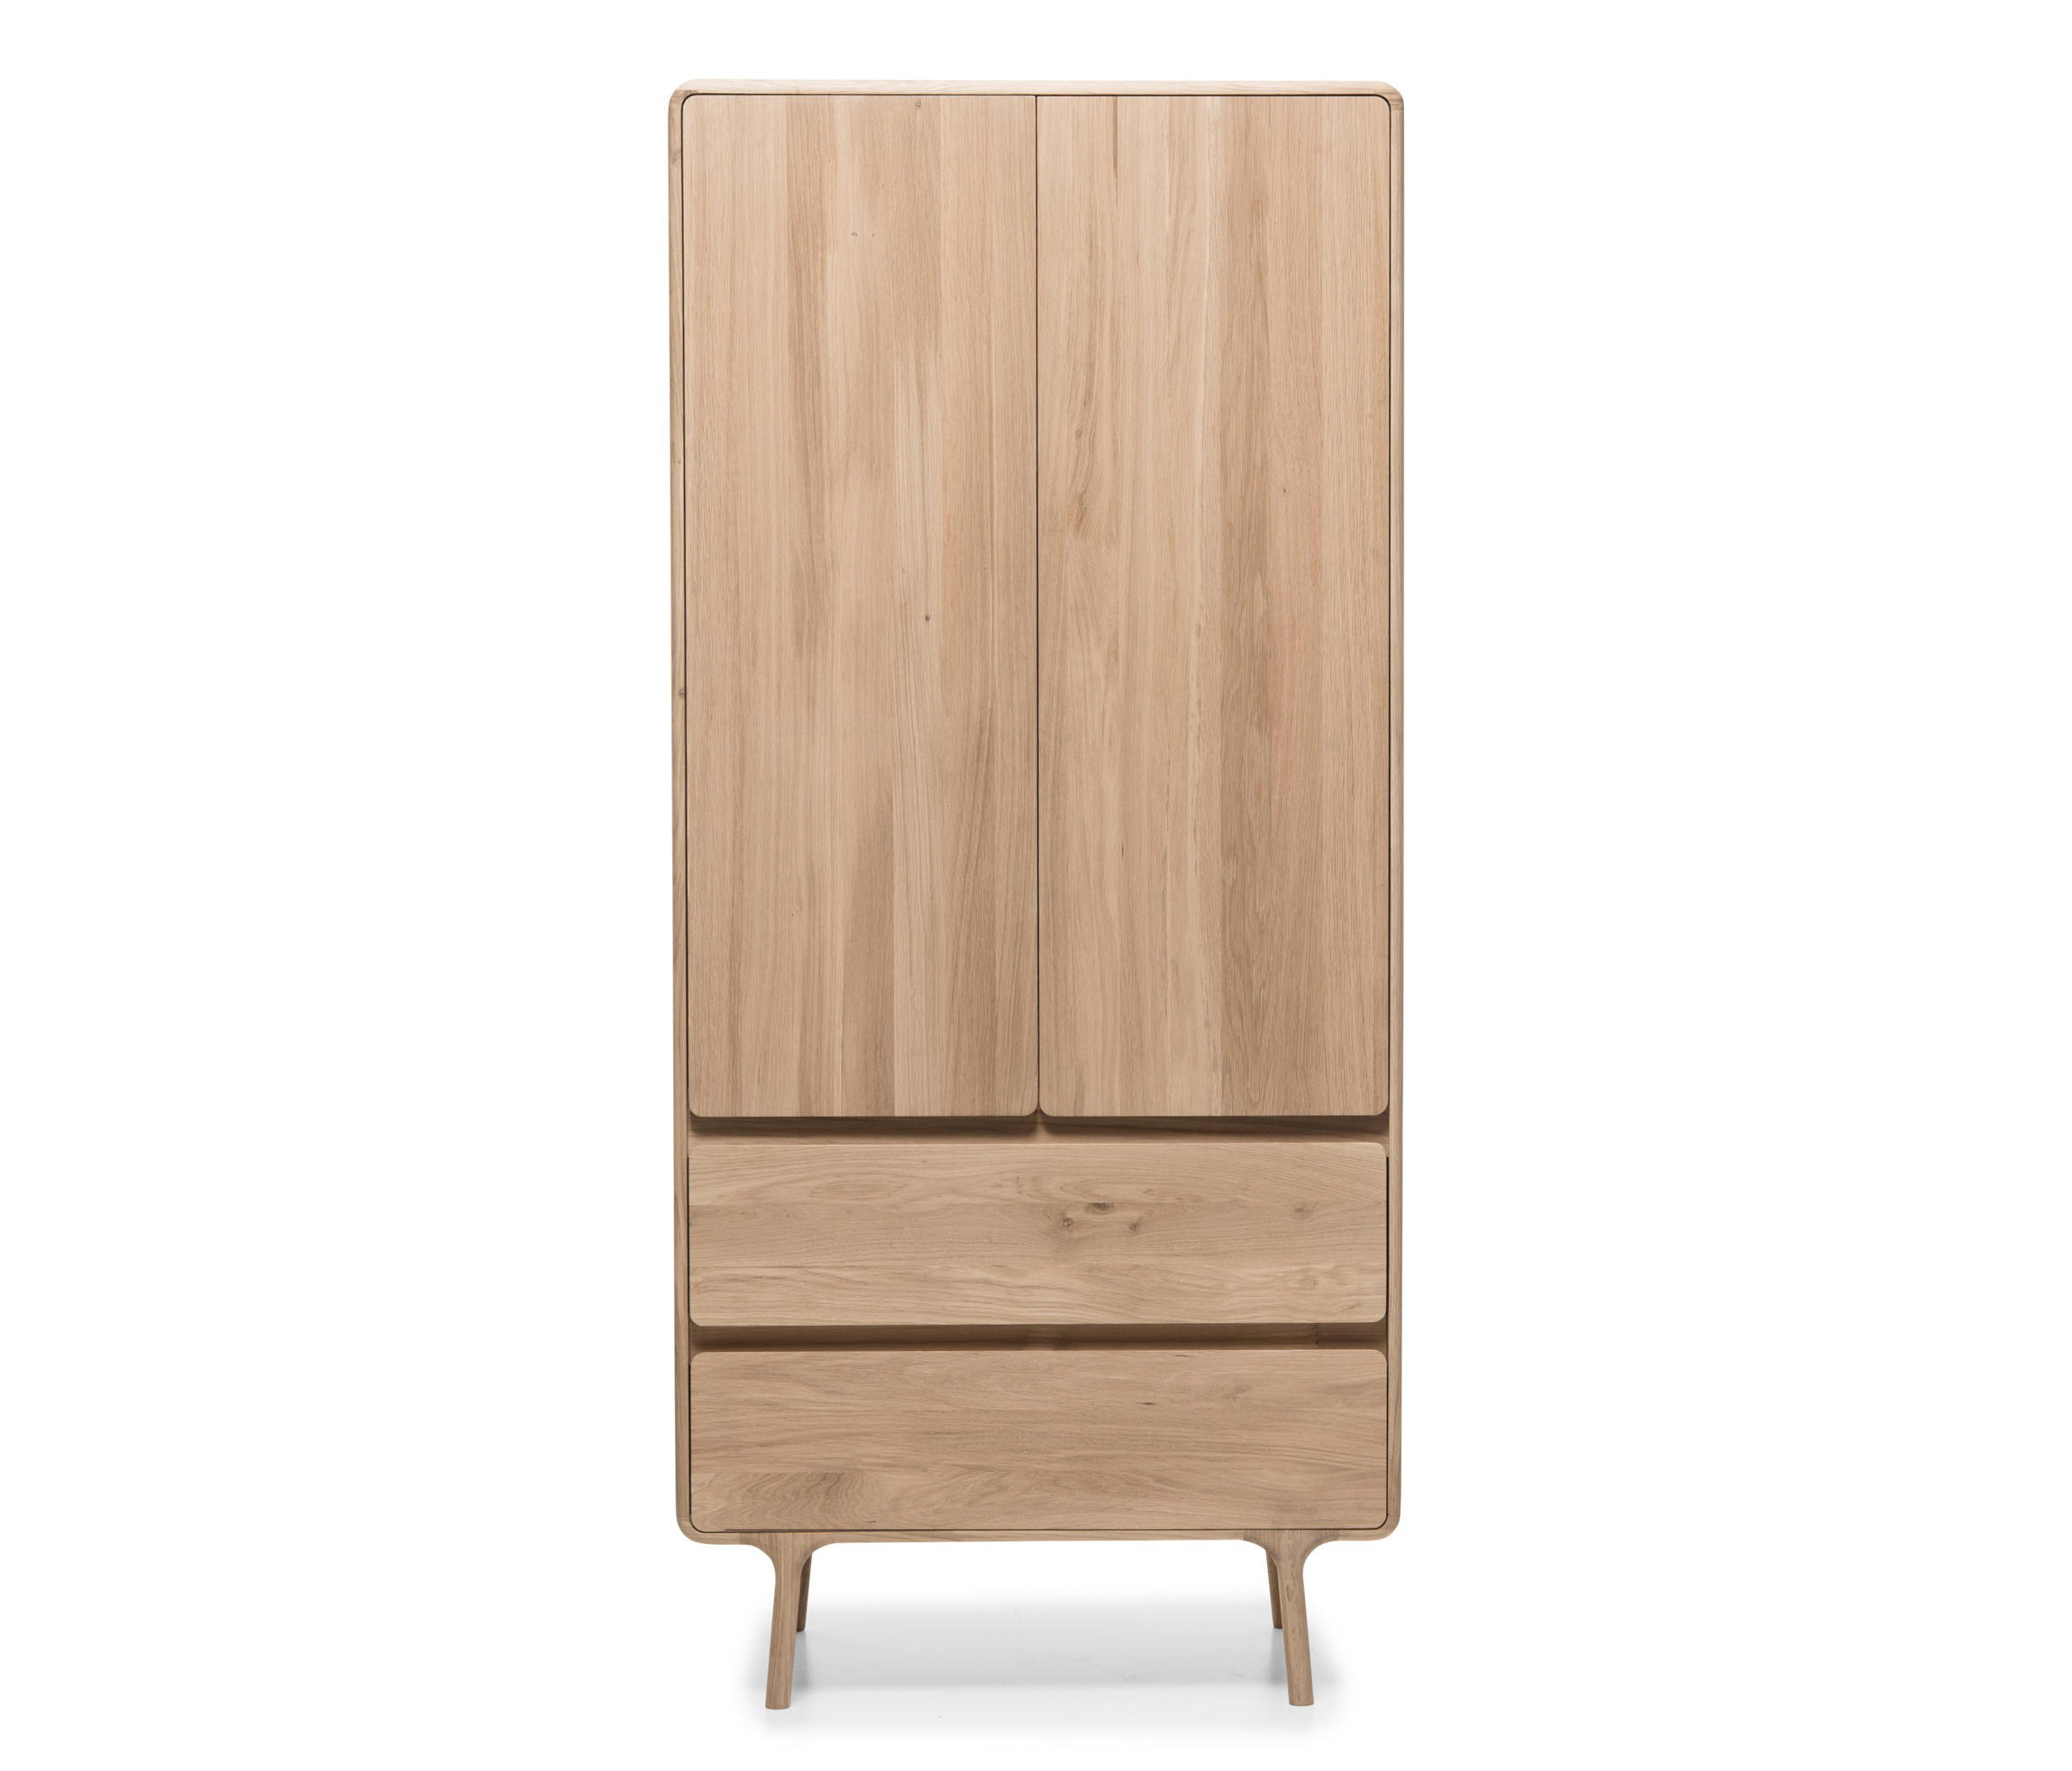 choose a furnitureanddecors decor cabinet to how closet your cabinets com room wardrobe for